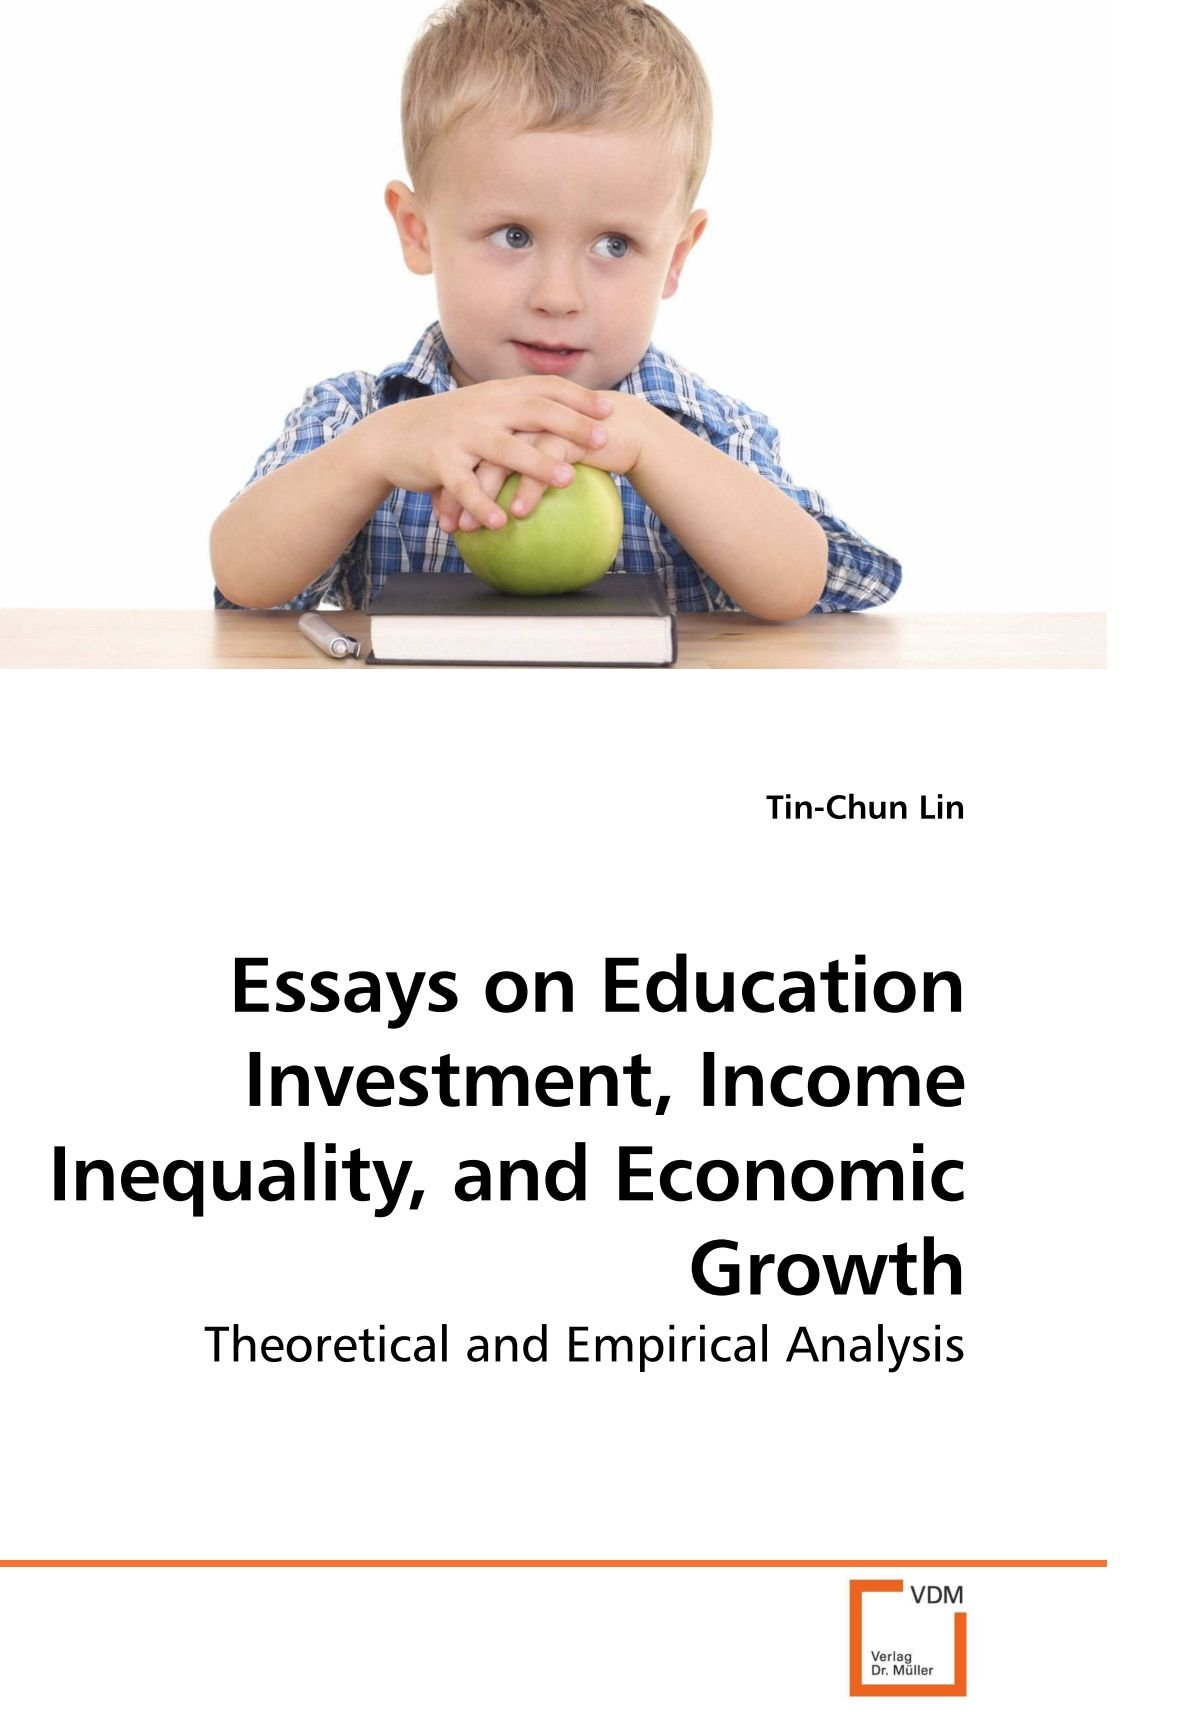 com essays on education investment income inequality and com essays on education investment income inequality and economic growth theoretical and empirical analysis 9783639231564 tin chun lin books